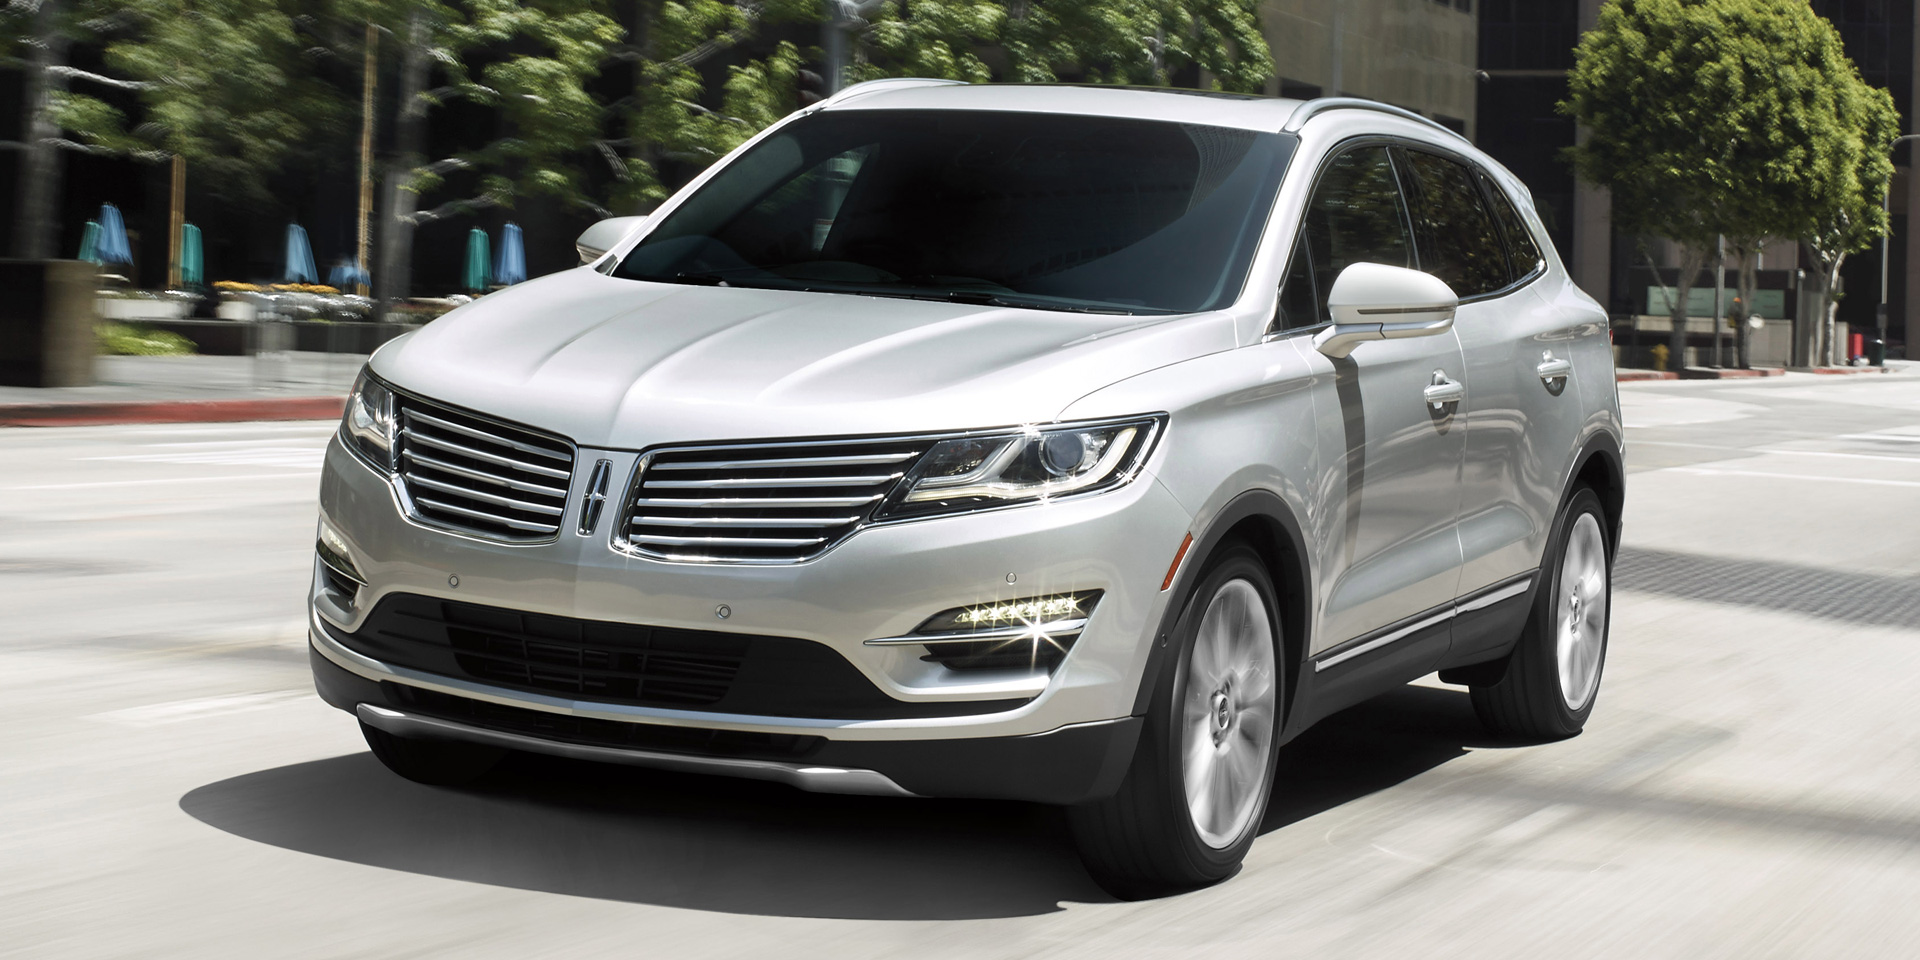 2019 Lincoln Mkc Vehicles On Display Chicago Auto Show